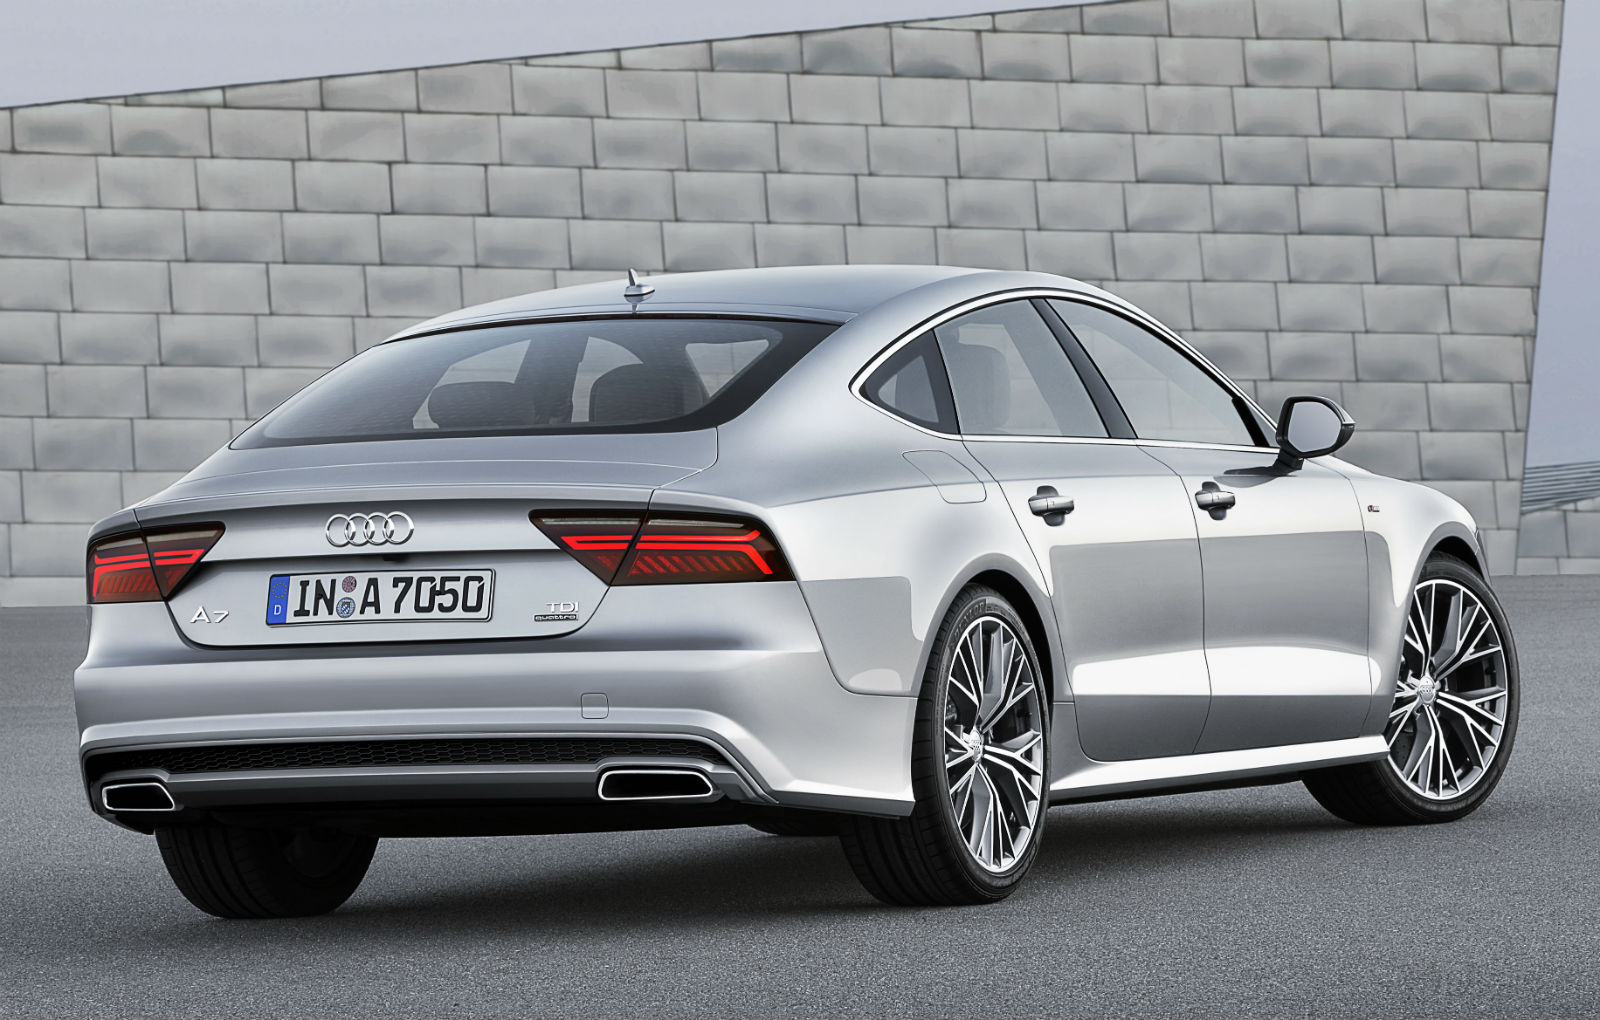 2014 audi a7 sportback revealed with facelift and power upgrades video autoevolution. Black Bedroom Furniture Sets. Home Design Ideas